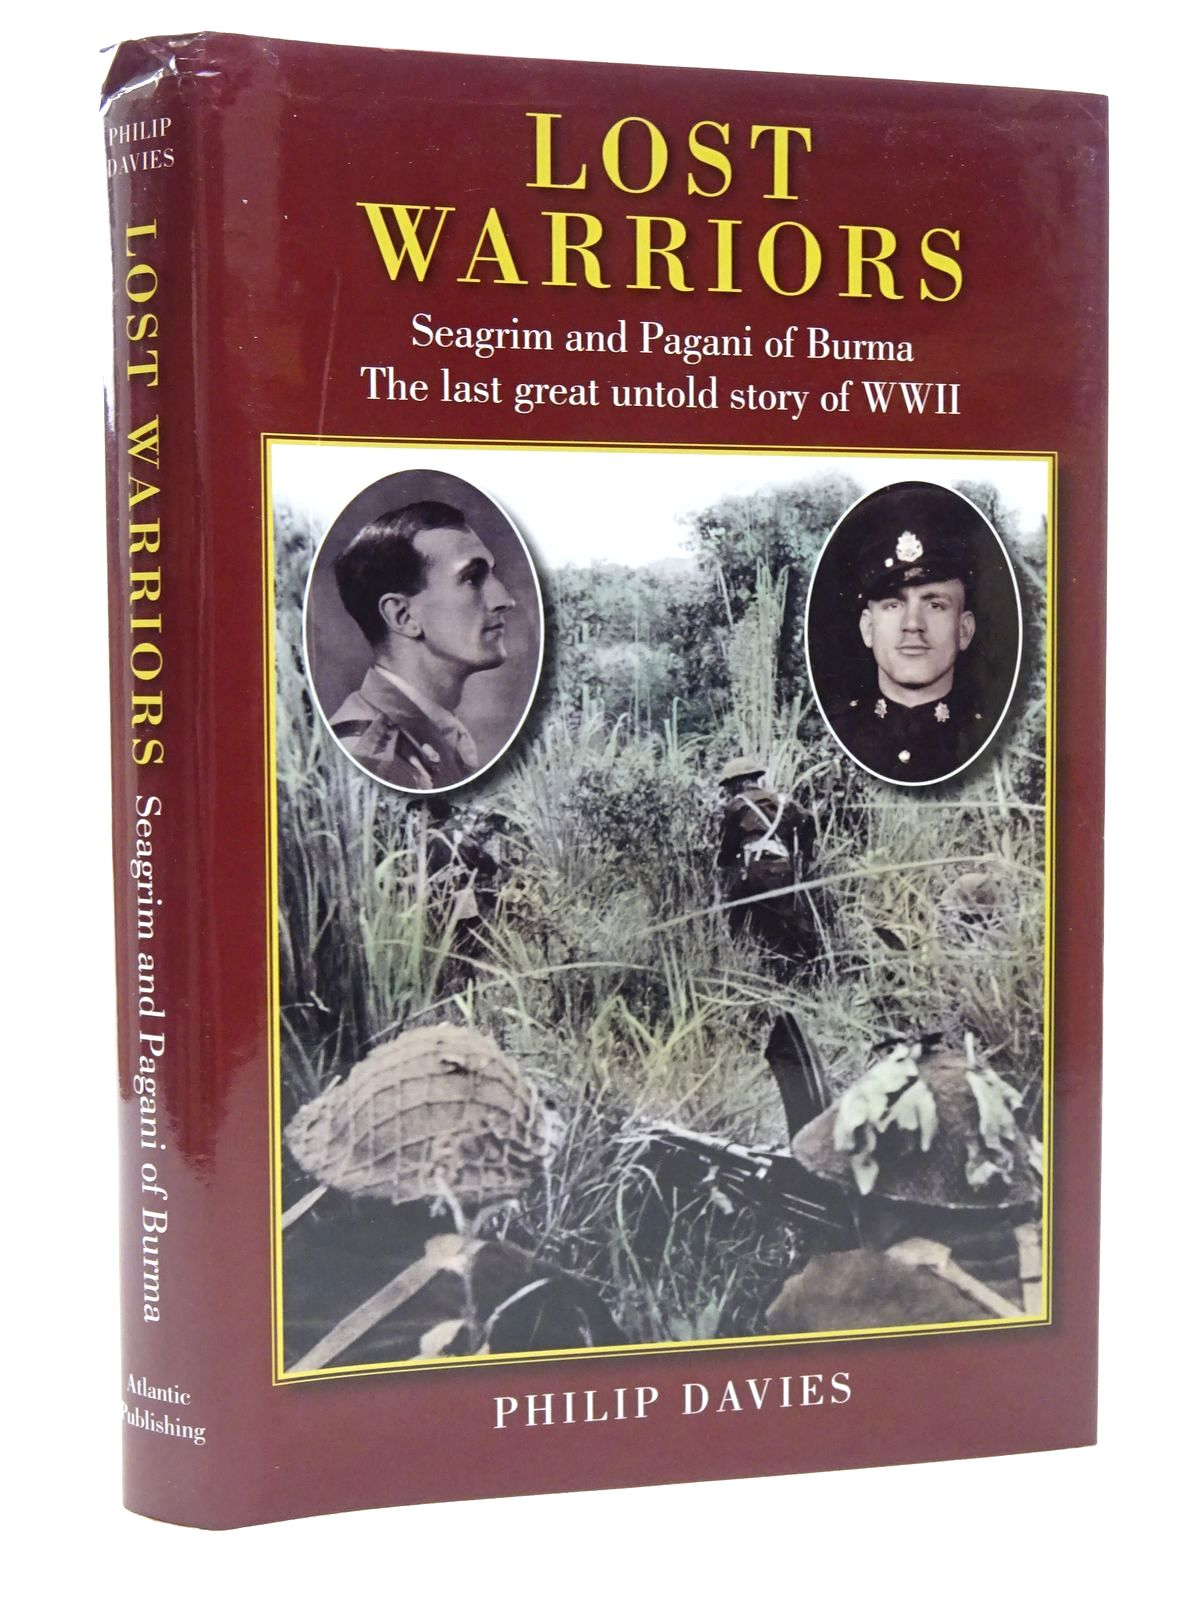 Photo of LOST WARRIORS SEAGRIM AND PAGANI OF BURMA THE LAST GREAT UNTOLD STORY OF WWII written by Davies, Philip published by Atlantic Publishers (STOCK CODE: 2124197)  for sale by Stella & Rose's Books